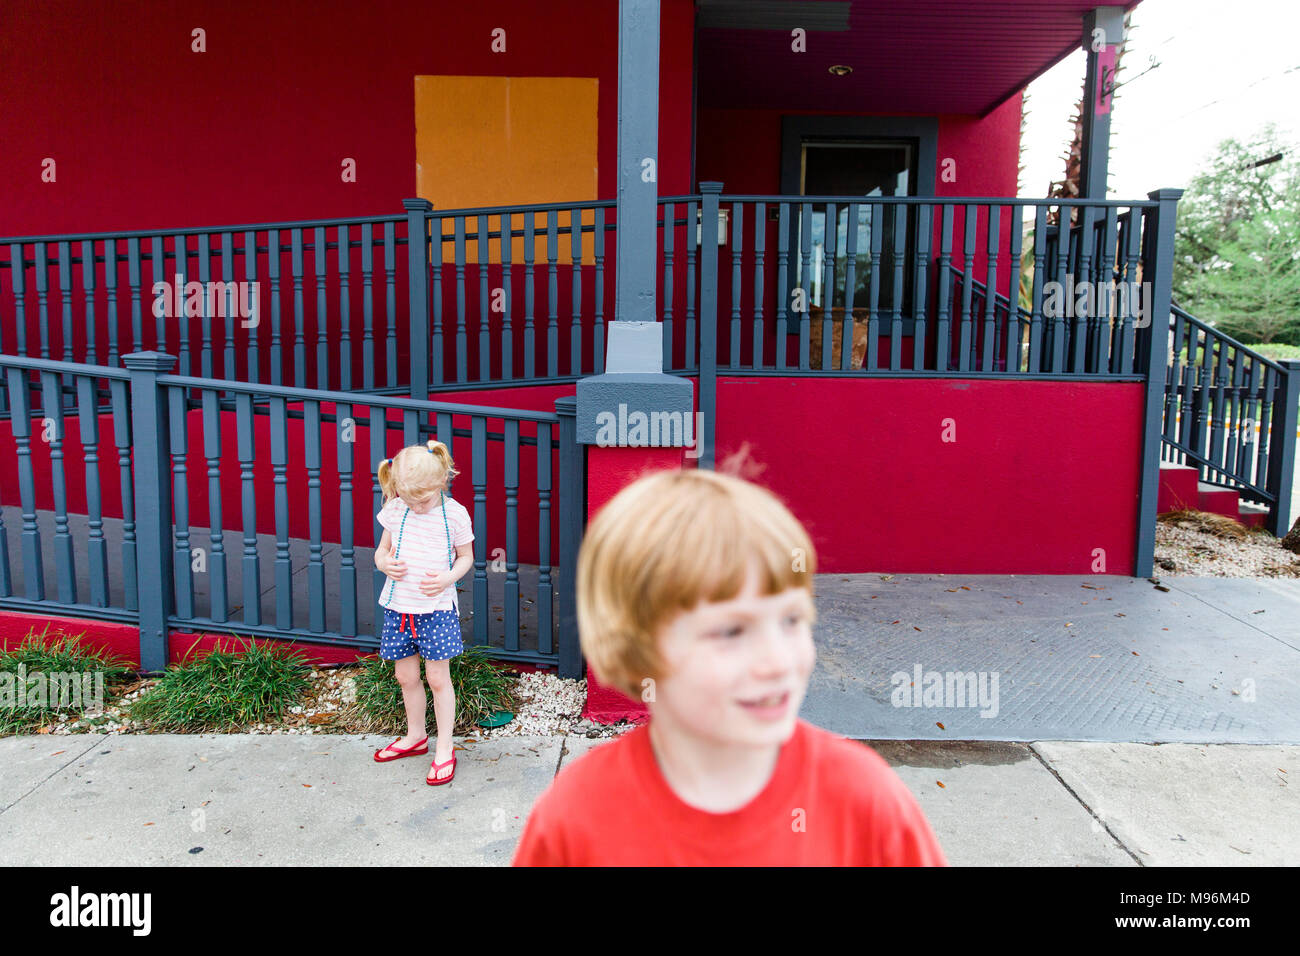 Brother and Sister outside of red building - Stock Image